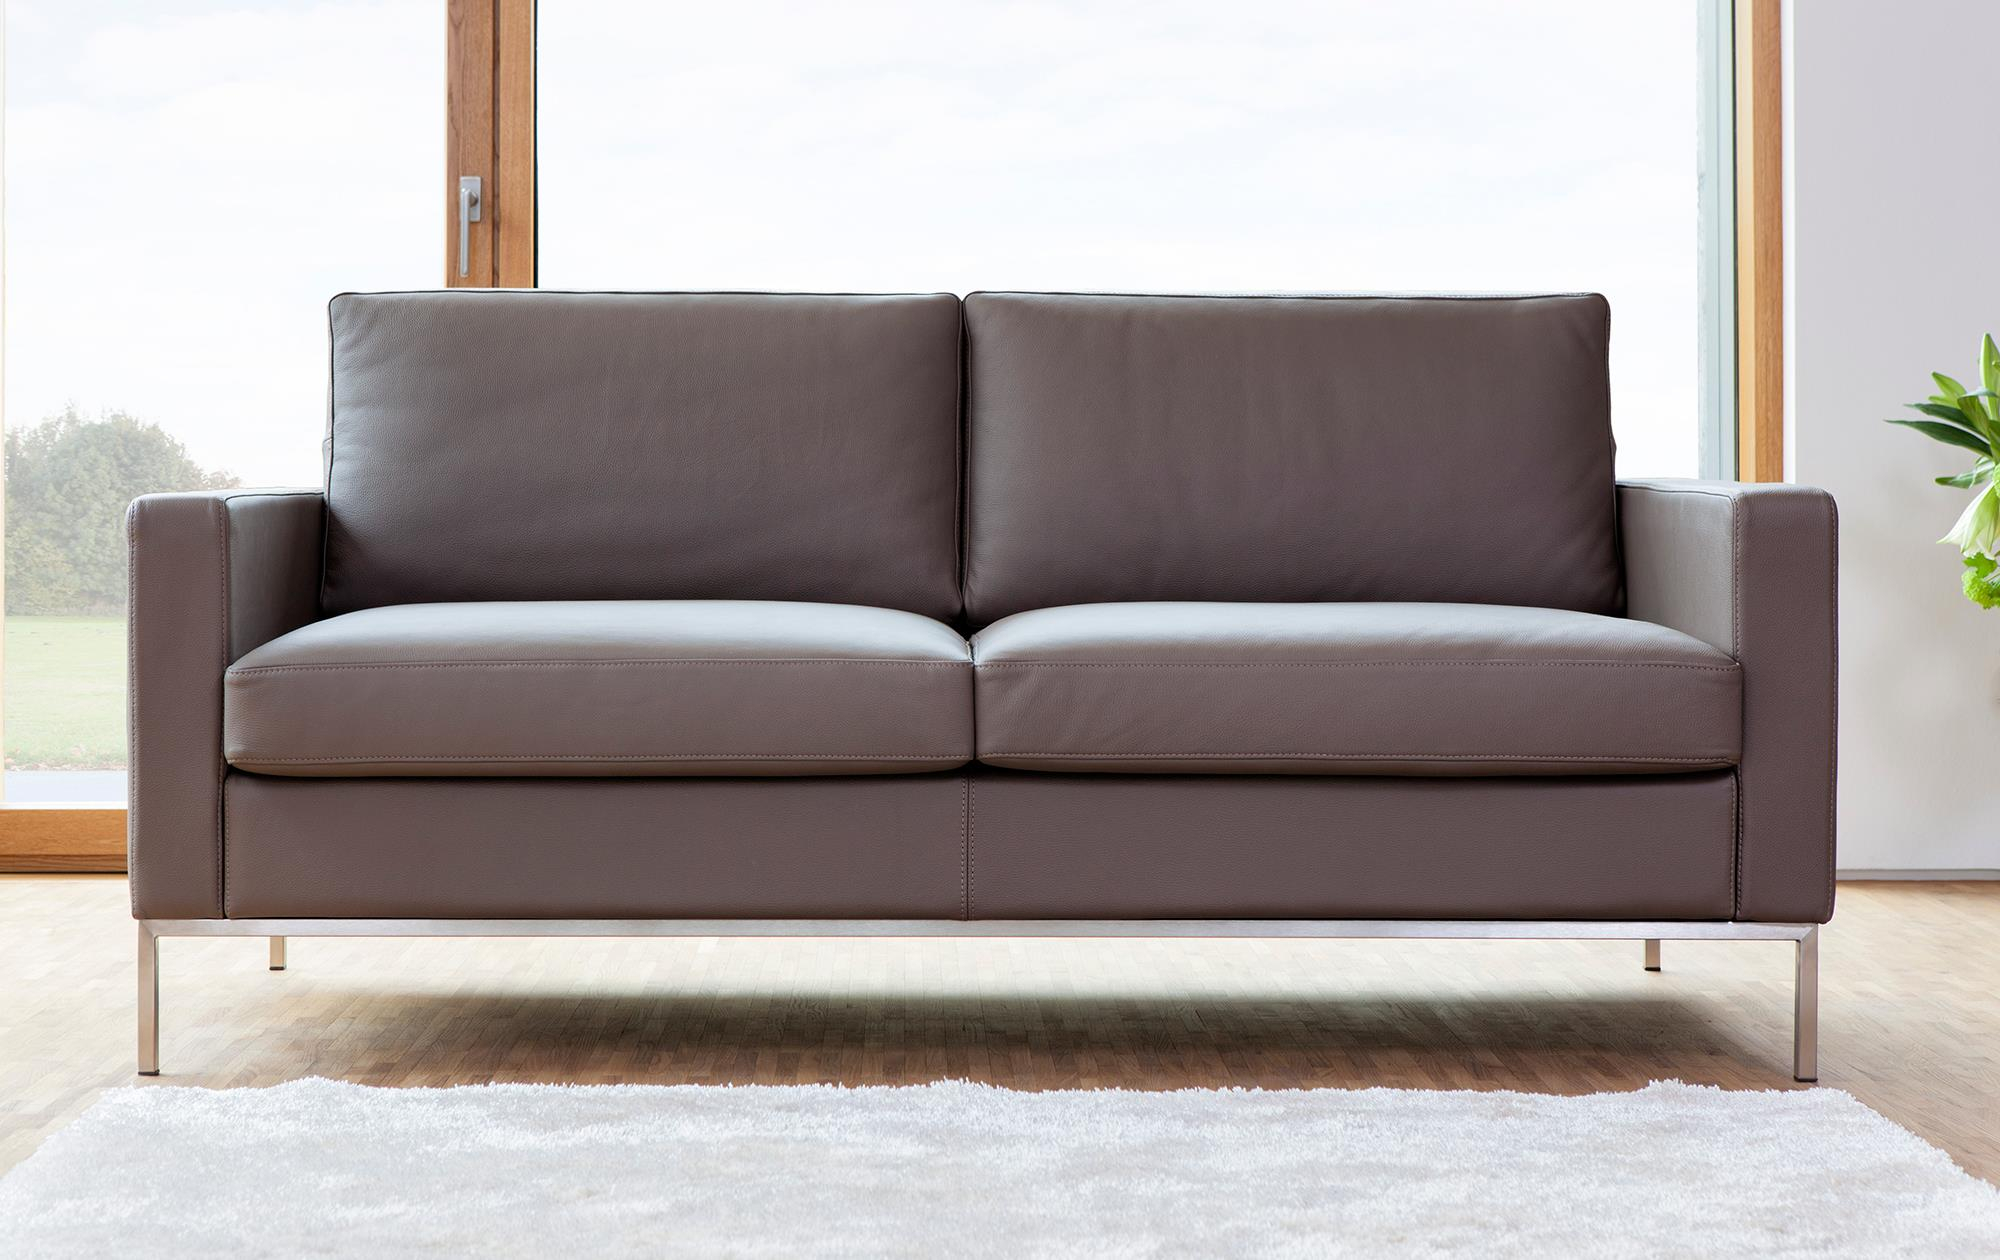 Matratze Kaltschaum Sofa Augsburg In Leder | Sessel-manufaktur.de